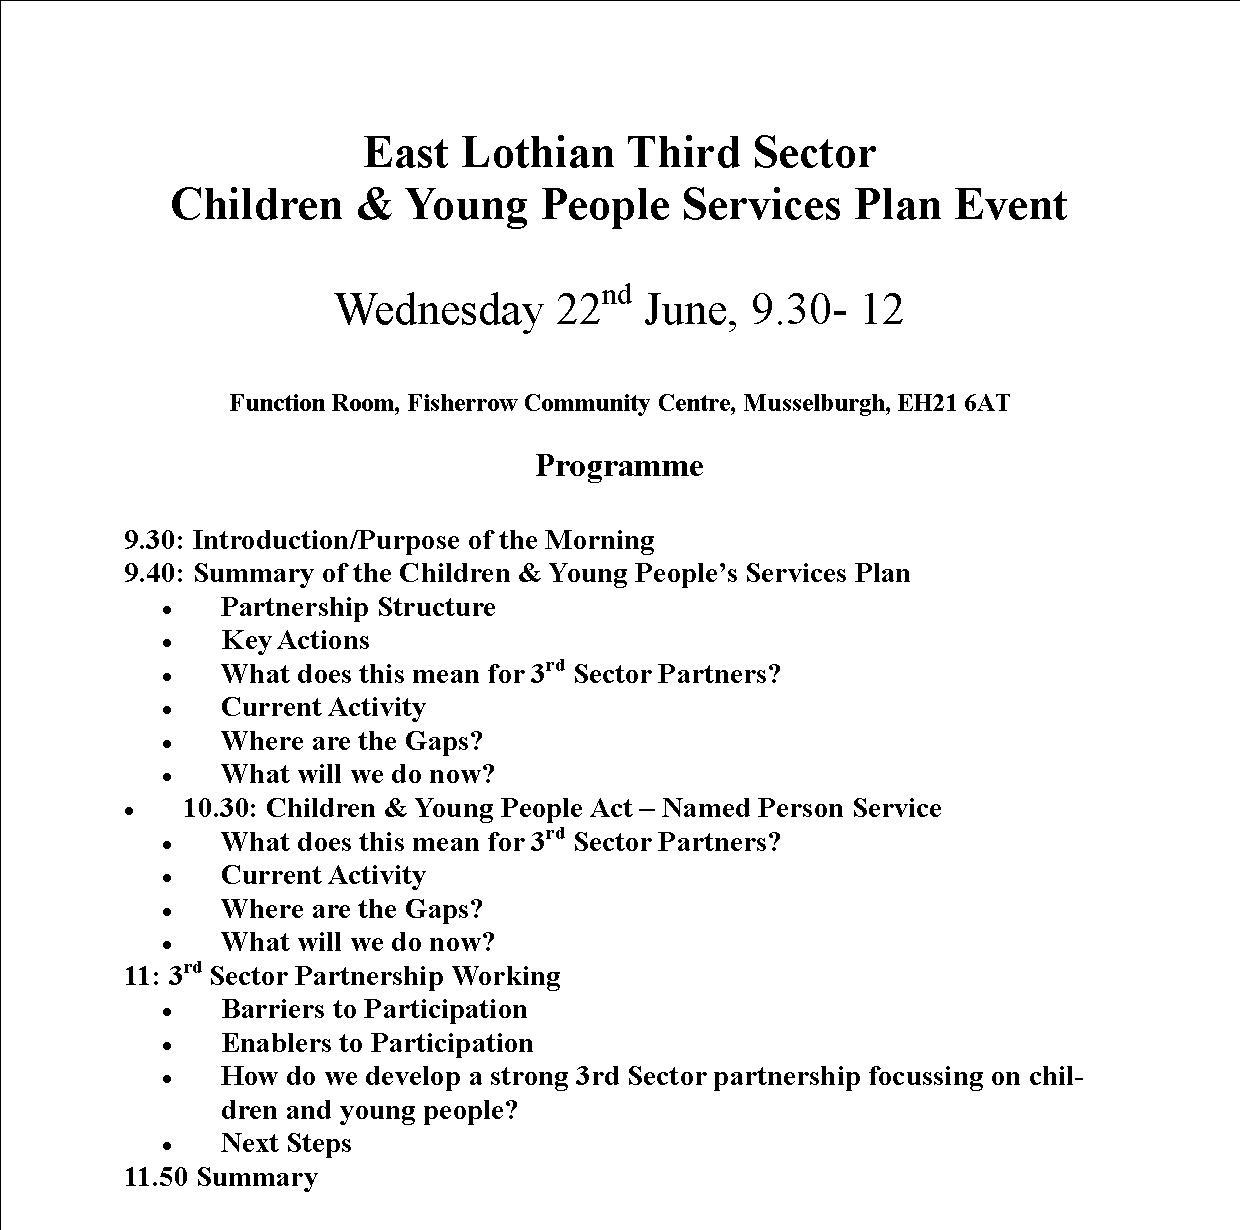 East Lothian Third Sector Children & Young People Services Plan Event